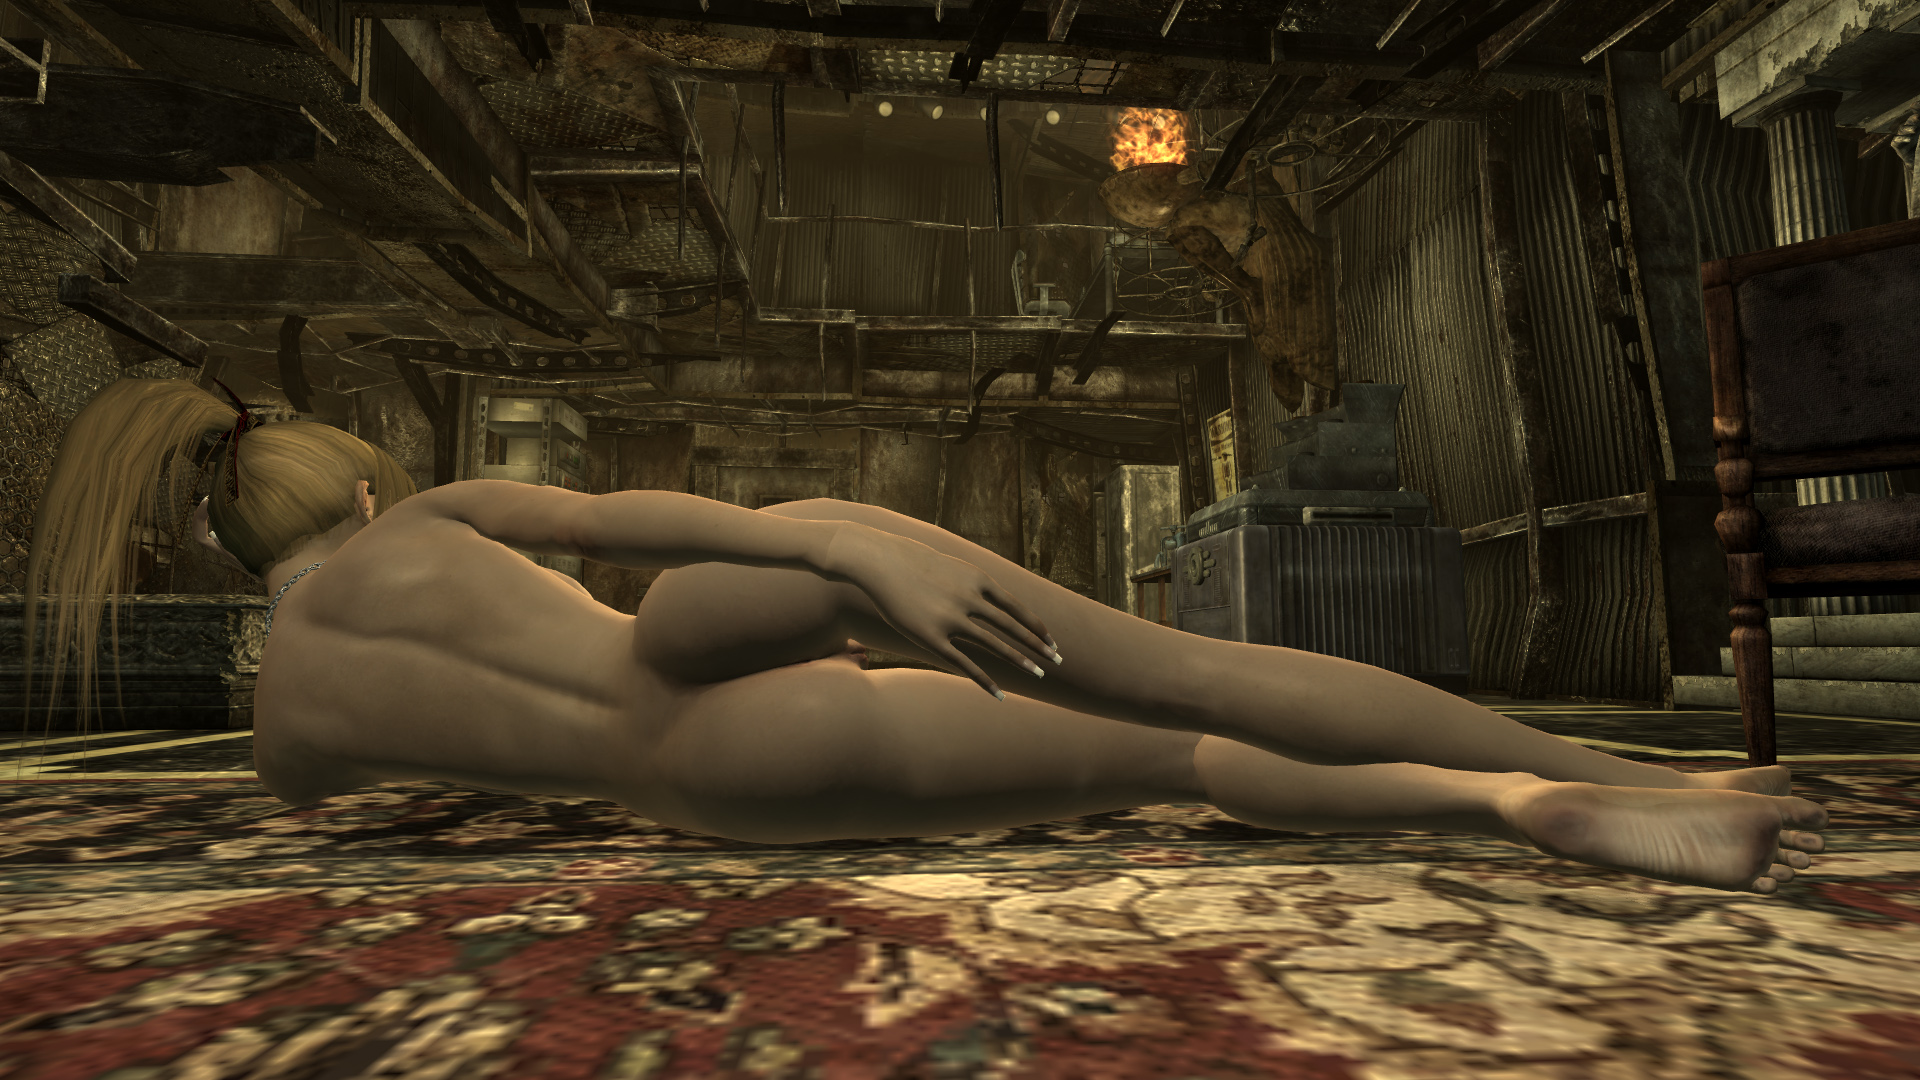 Morrowind hd sex mods hentai pic